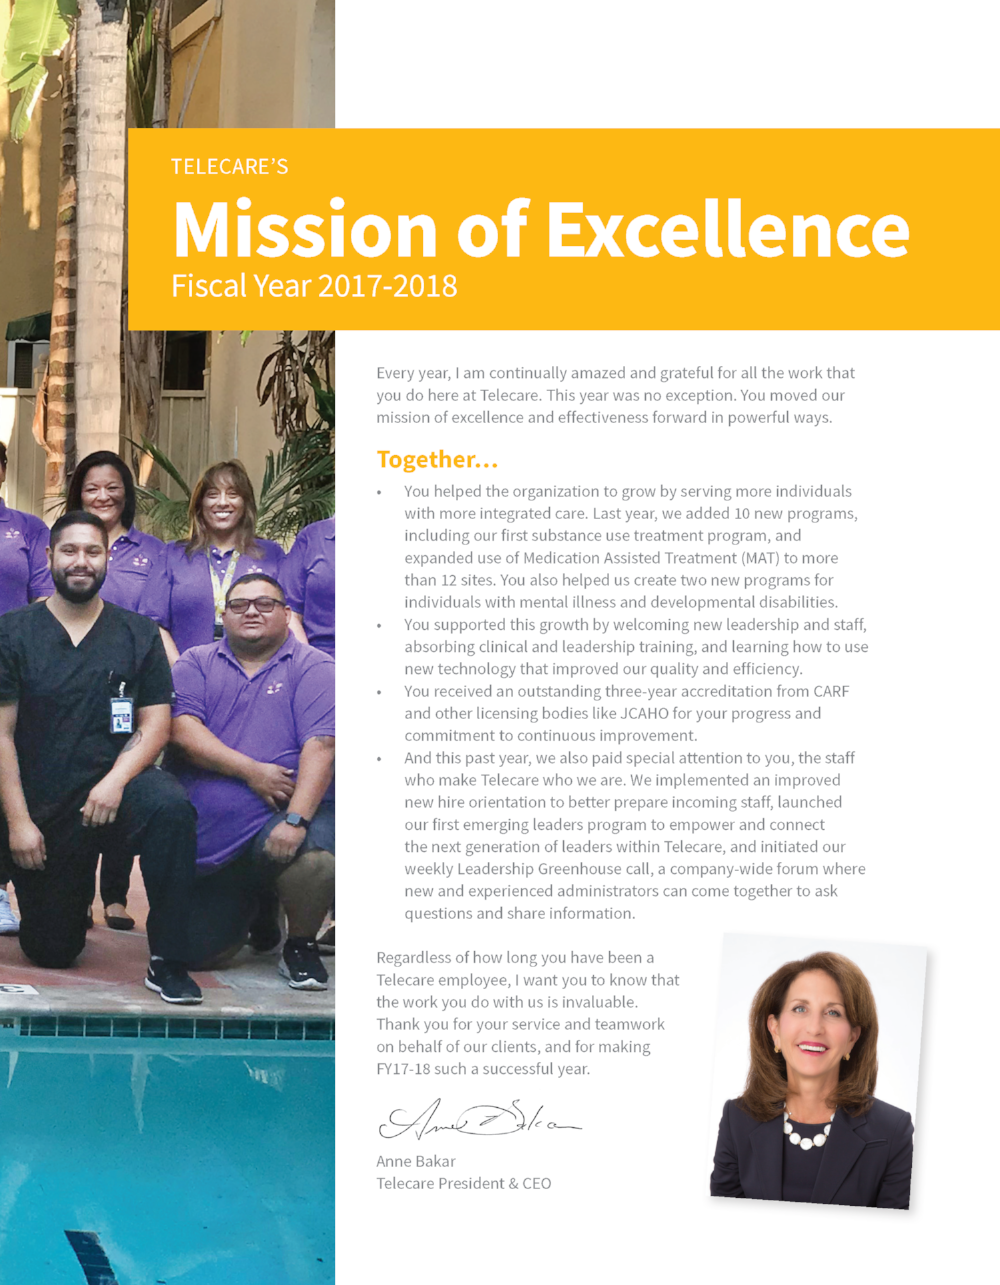 Telecare Mission of Excellence_FY17-18_vFINAL_Page_1.png